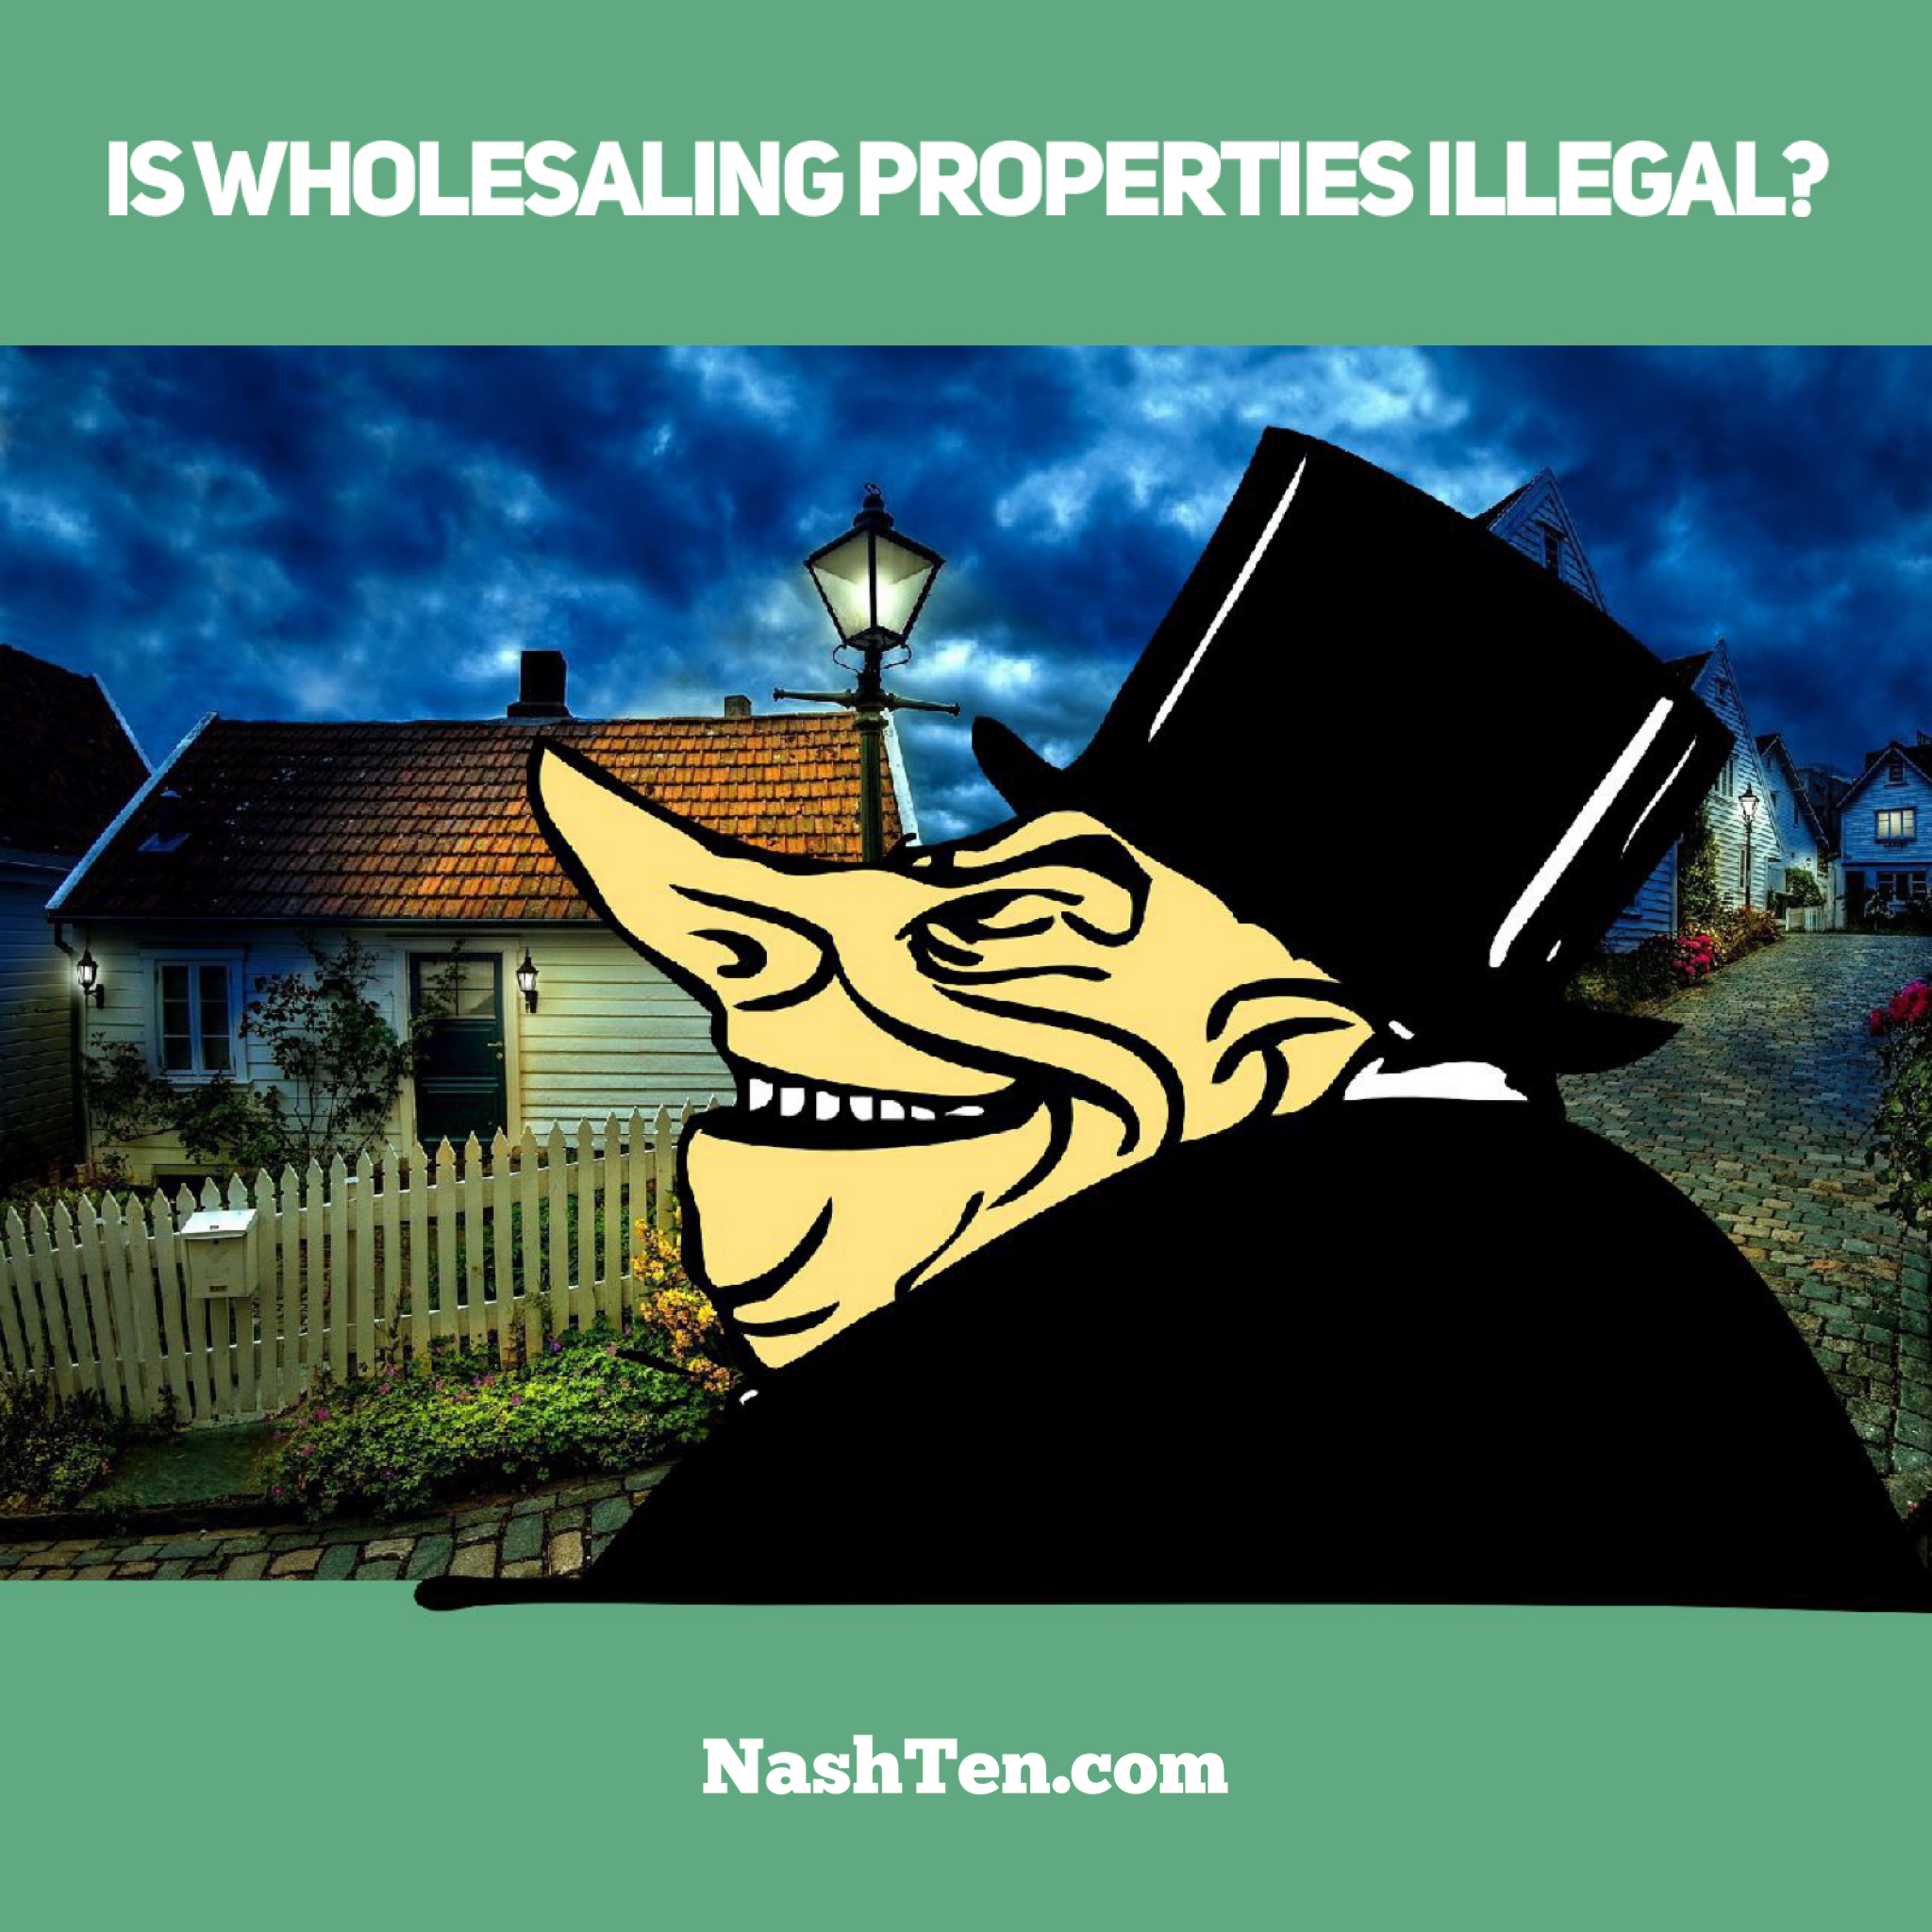 Is wholesaling illegal in Tennessee?